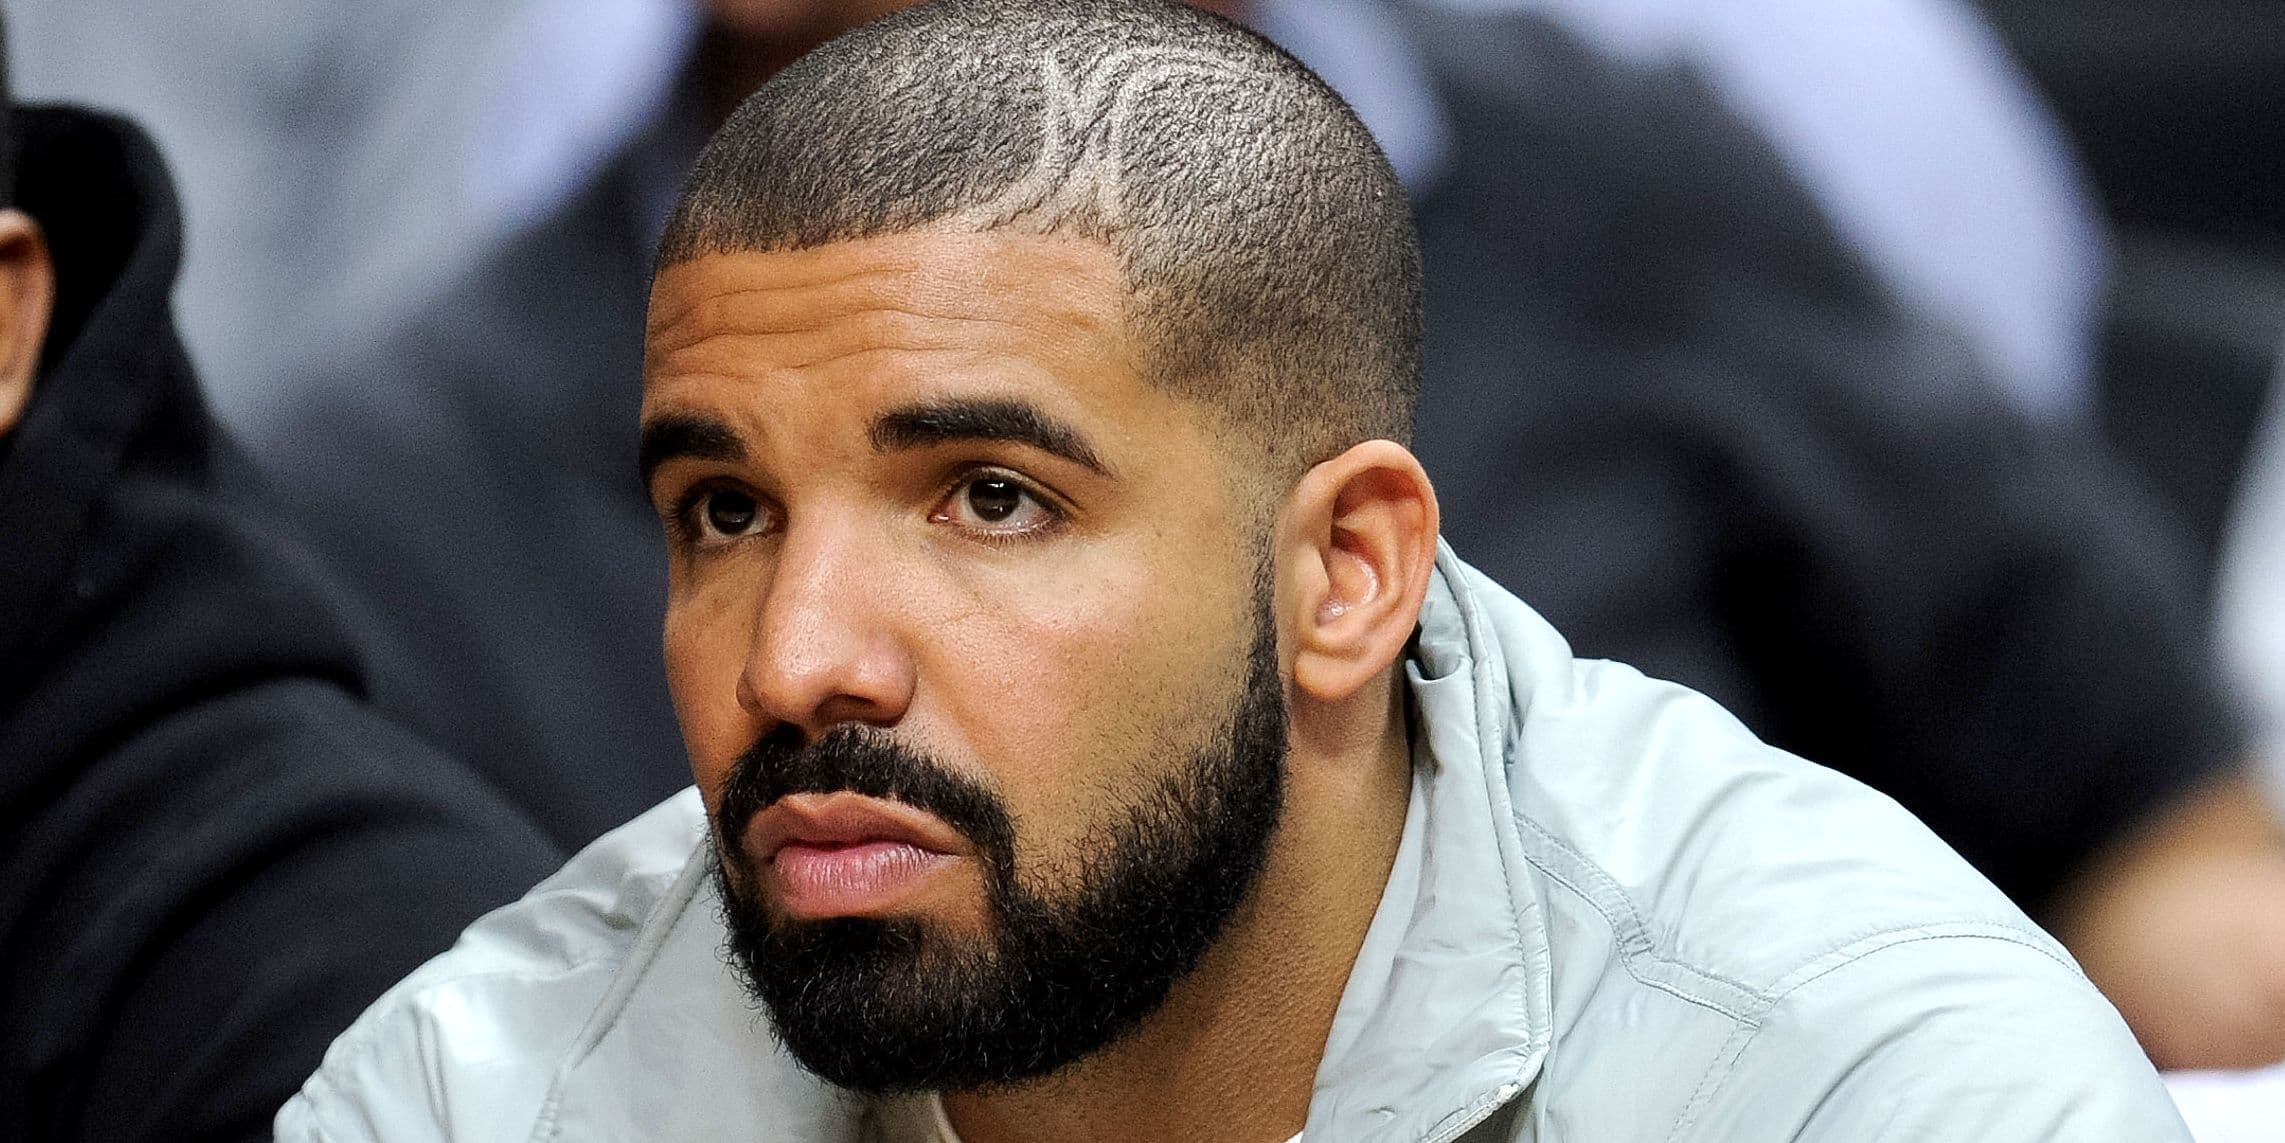 drake no beard photo - 1